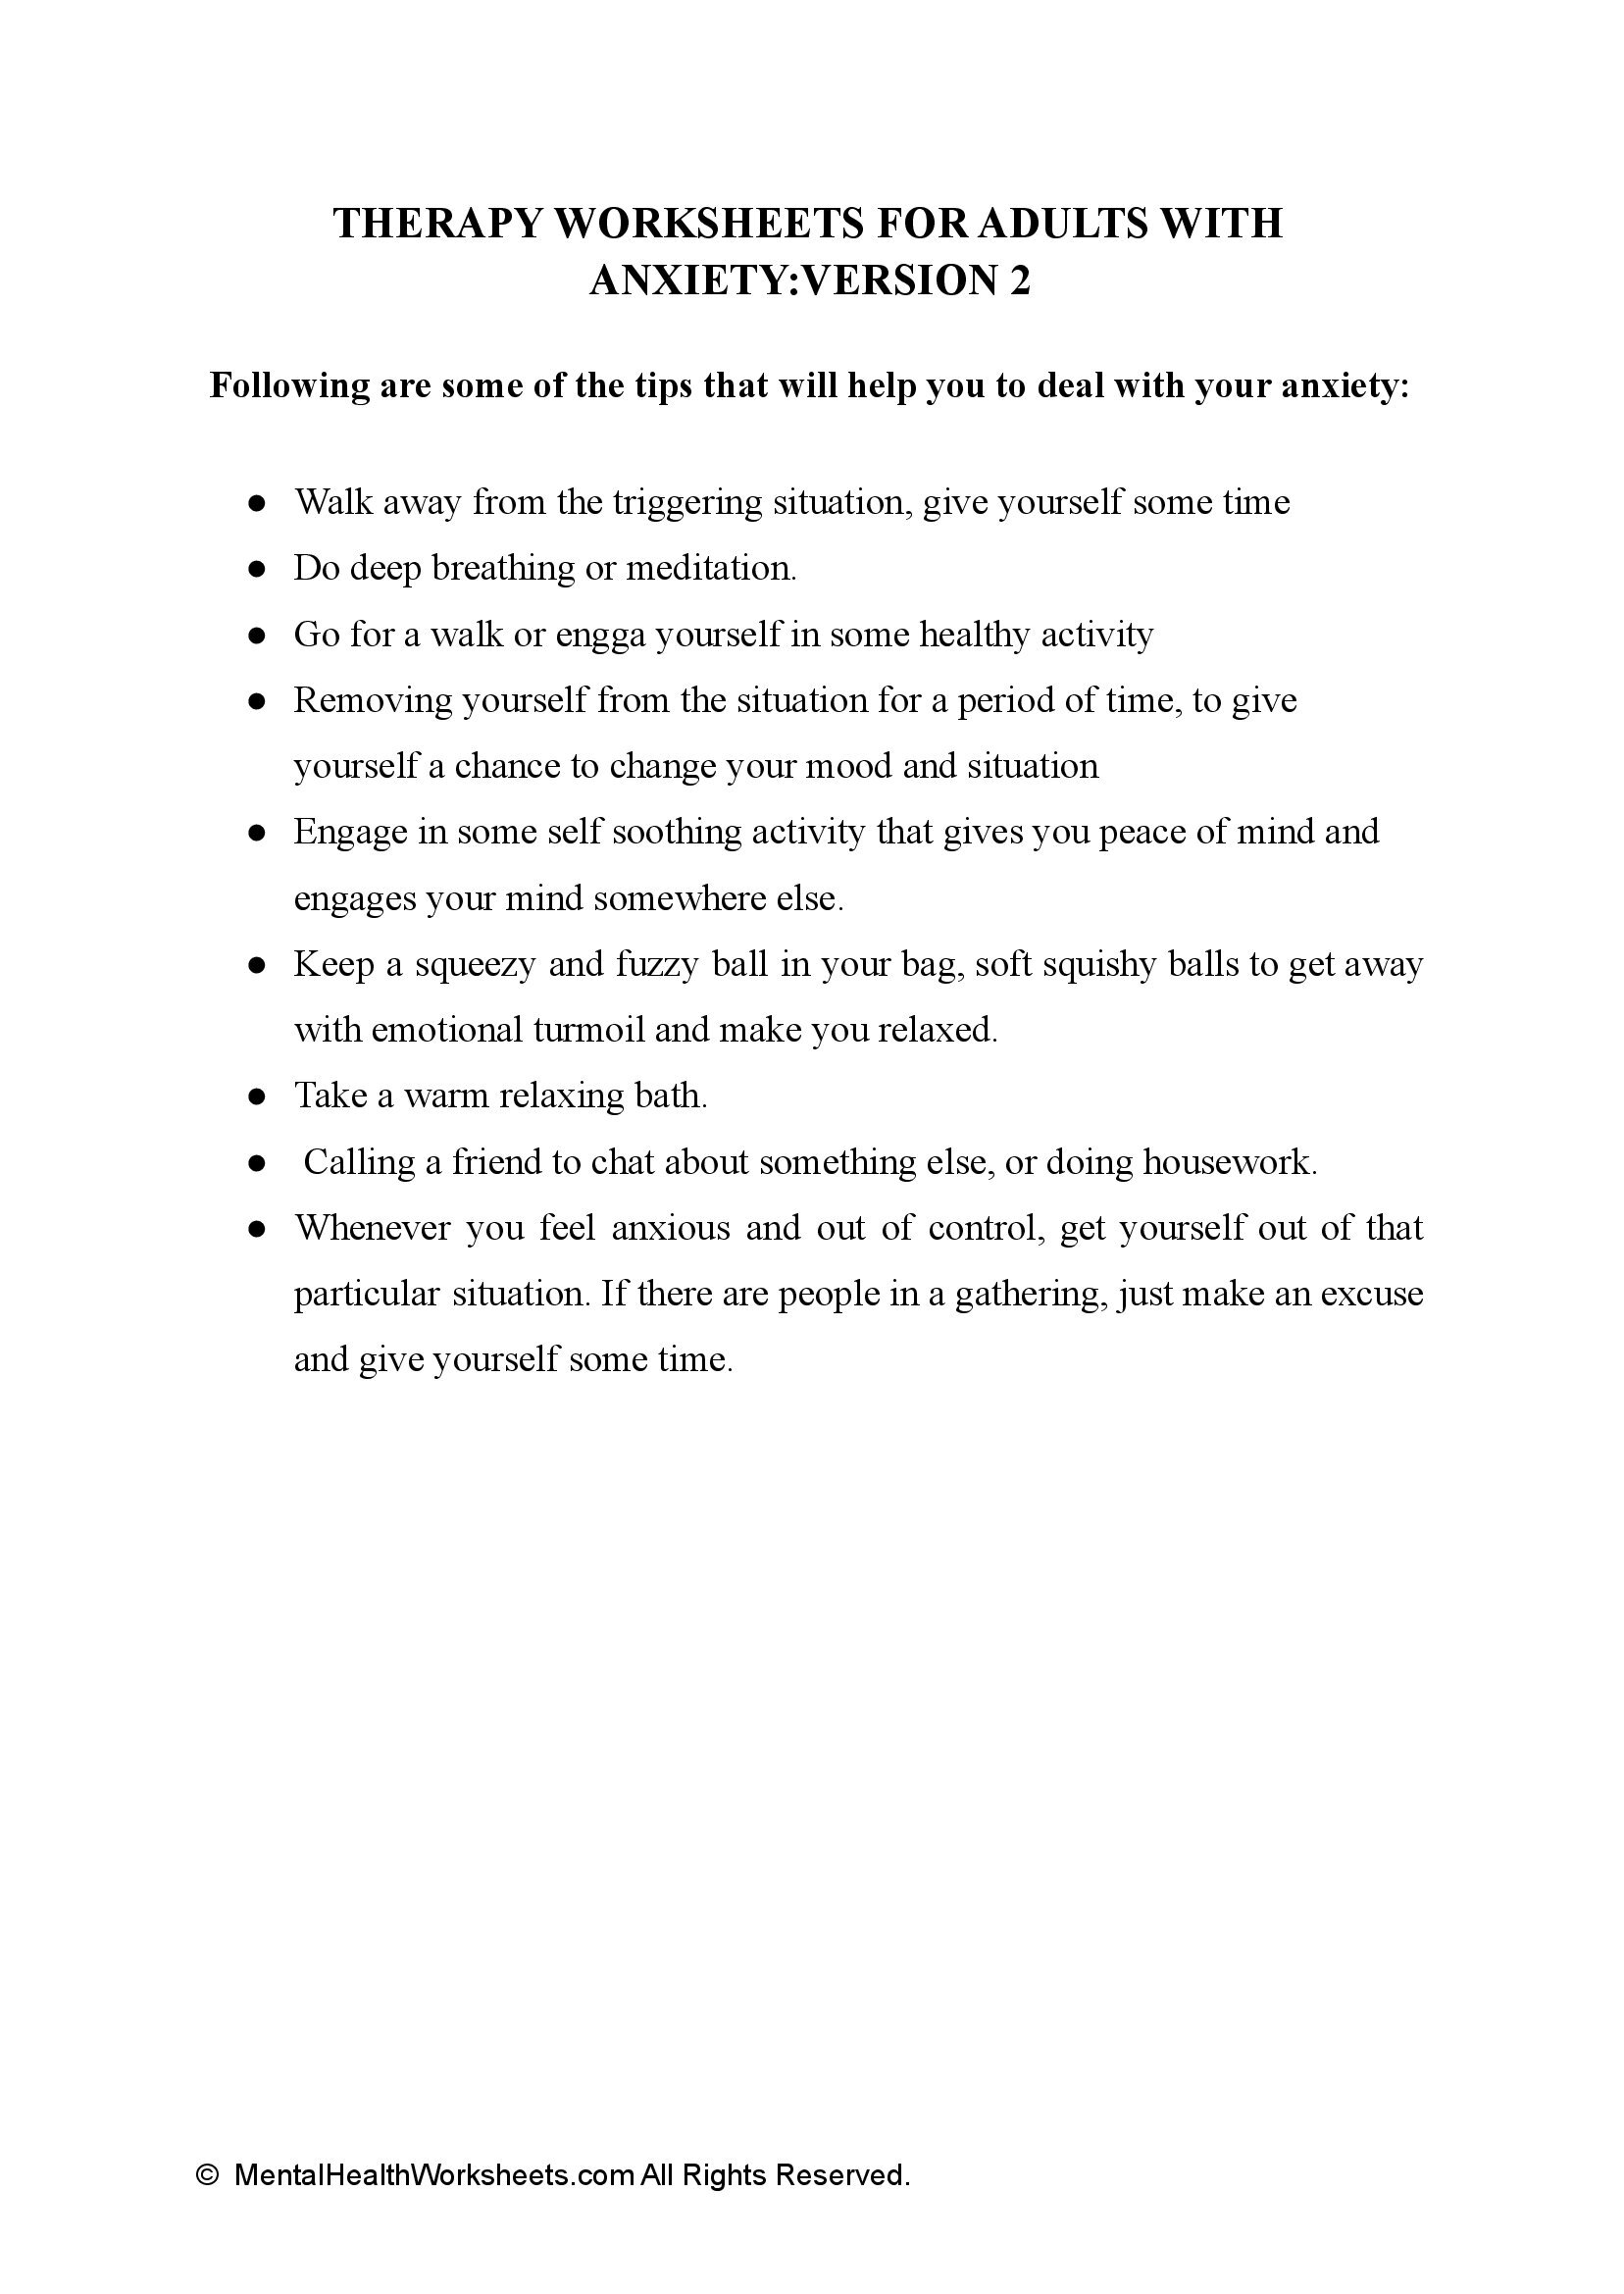 THERAPY WORKSHEETS FOR ADULTS WITH ANXIETY:VERSION 2